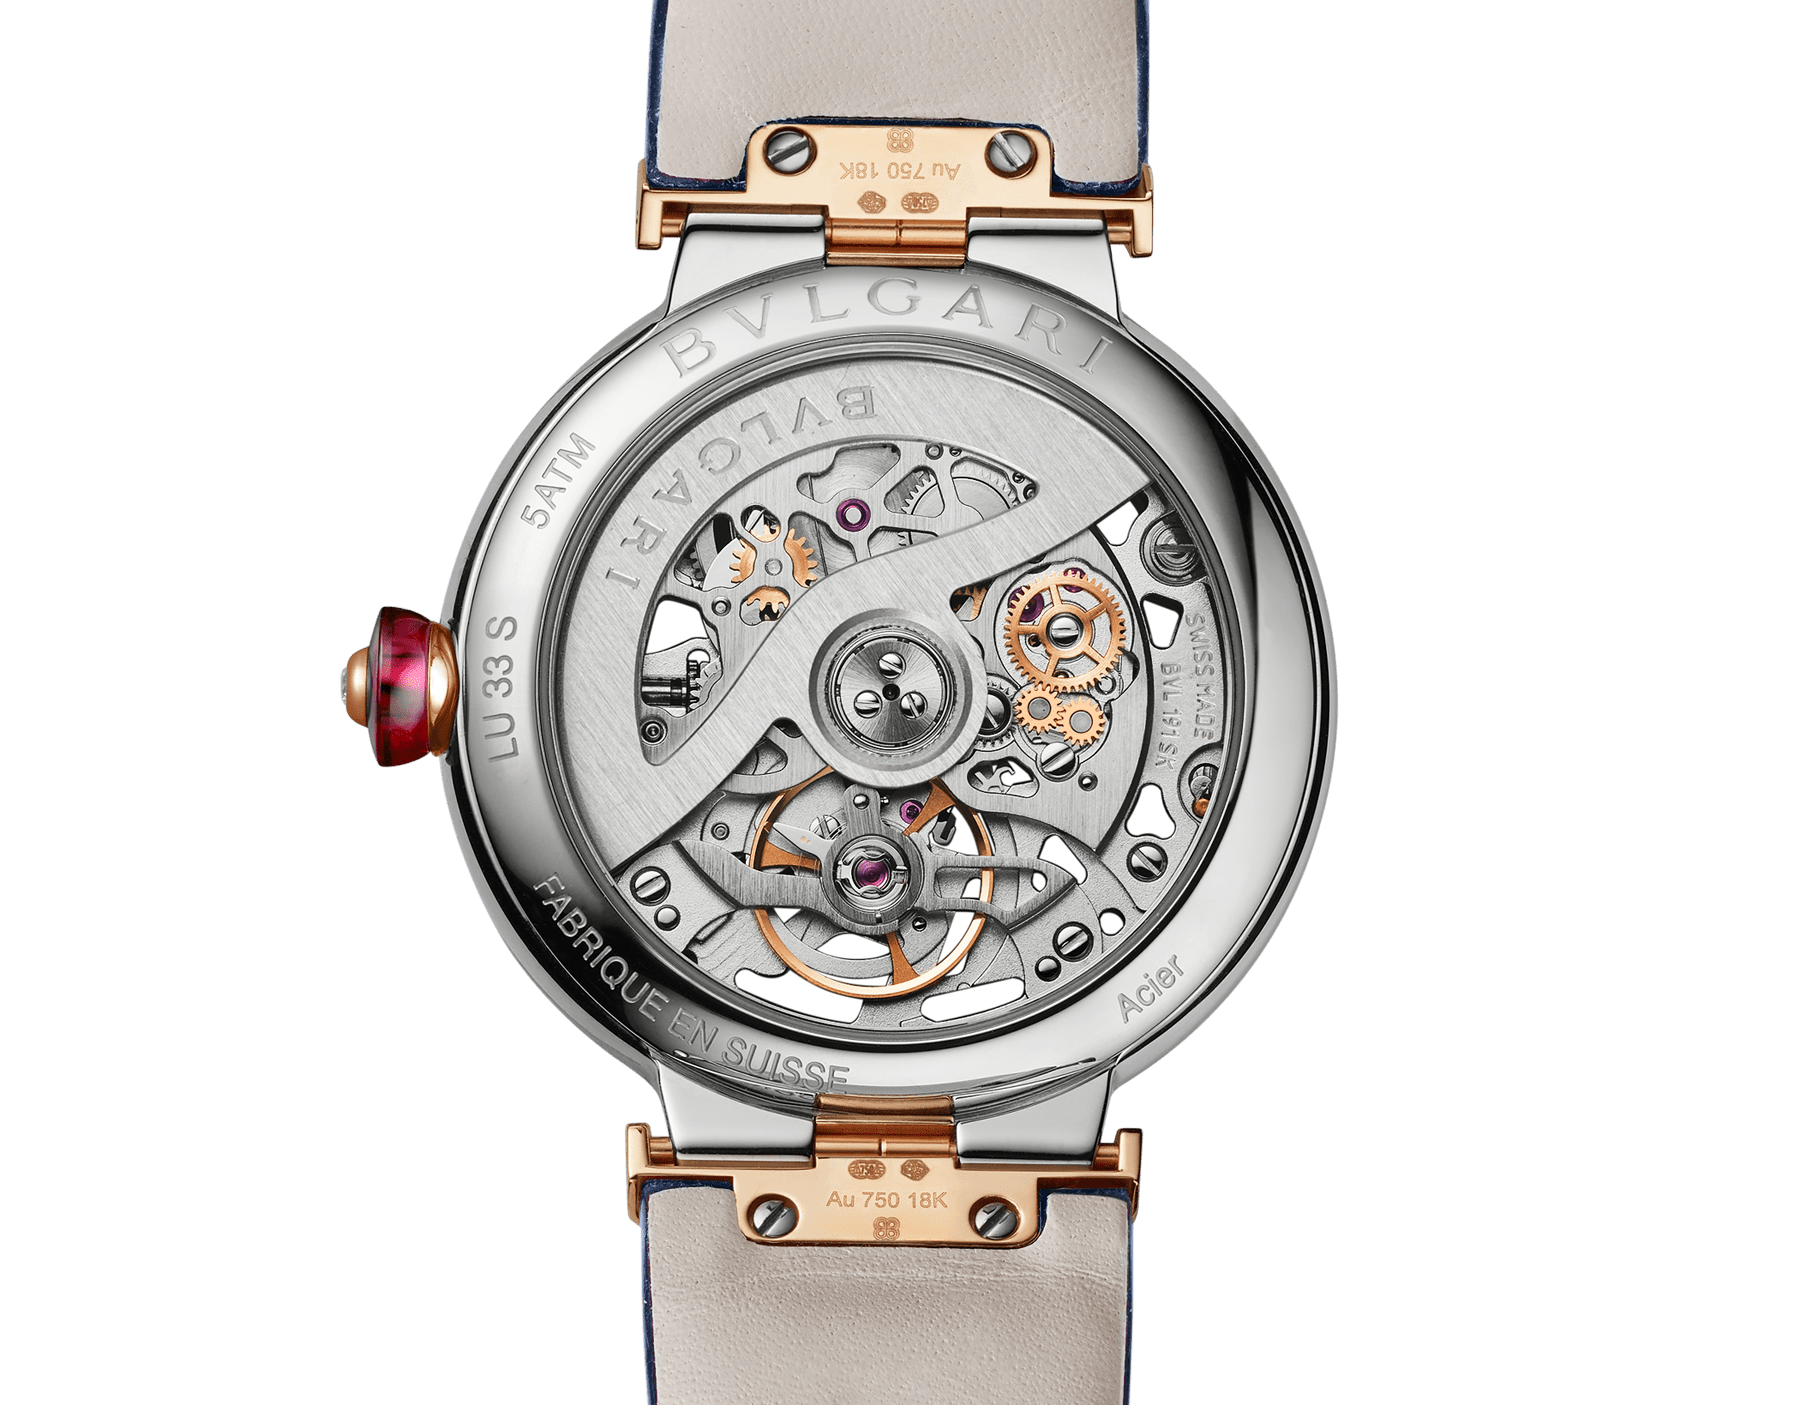 LVCEA Skeleton watch with mechanical manufacture movement, automatic winding and skeleton execution, polished stainless steel case, 18 kt rose gold bezel and links set with diamonds, blue lacquered openwork BVLGARI logo dial and blue alligator bracelet. Water-resistant up to 30 metres 103304 image 5